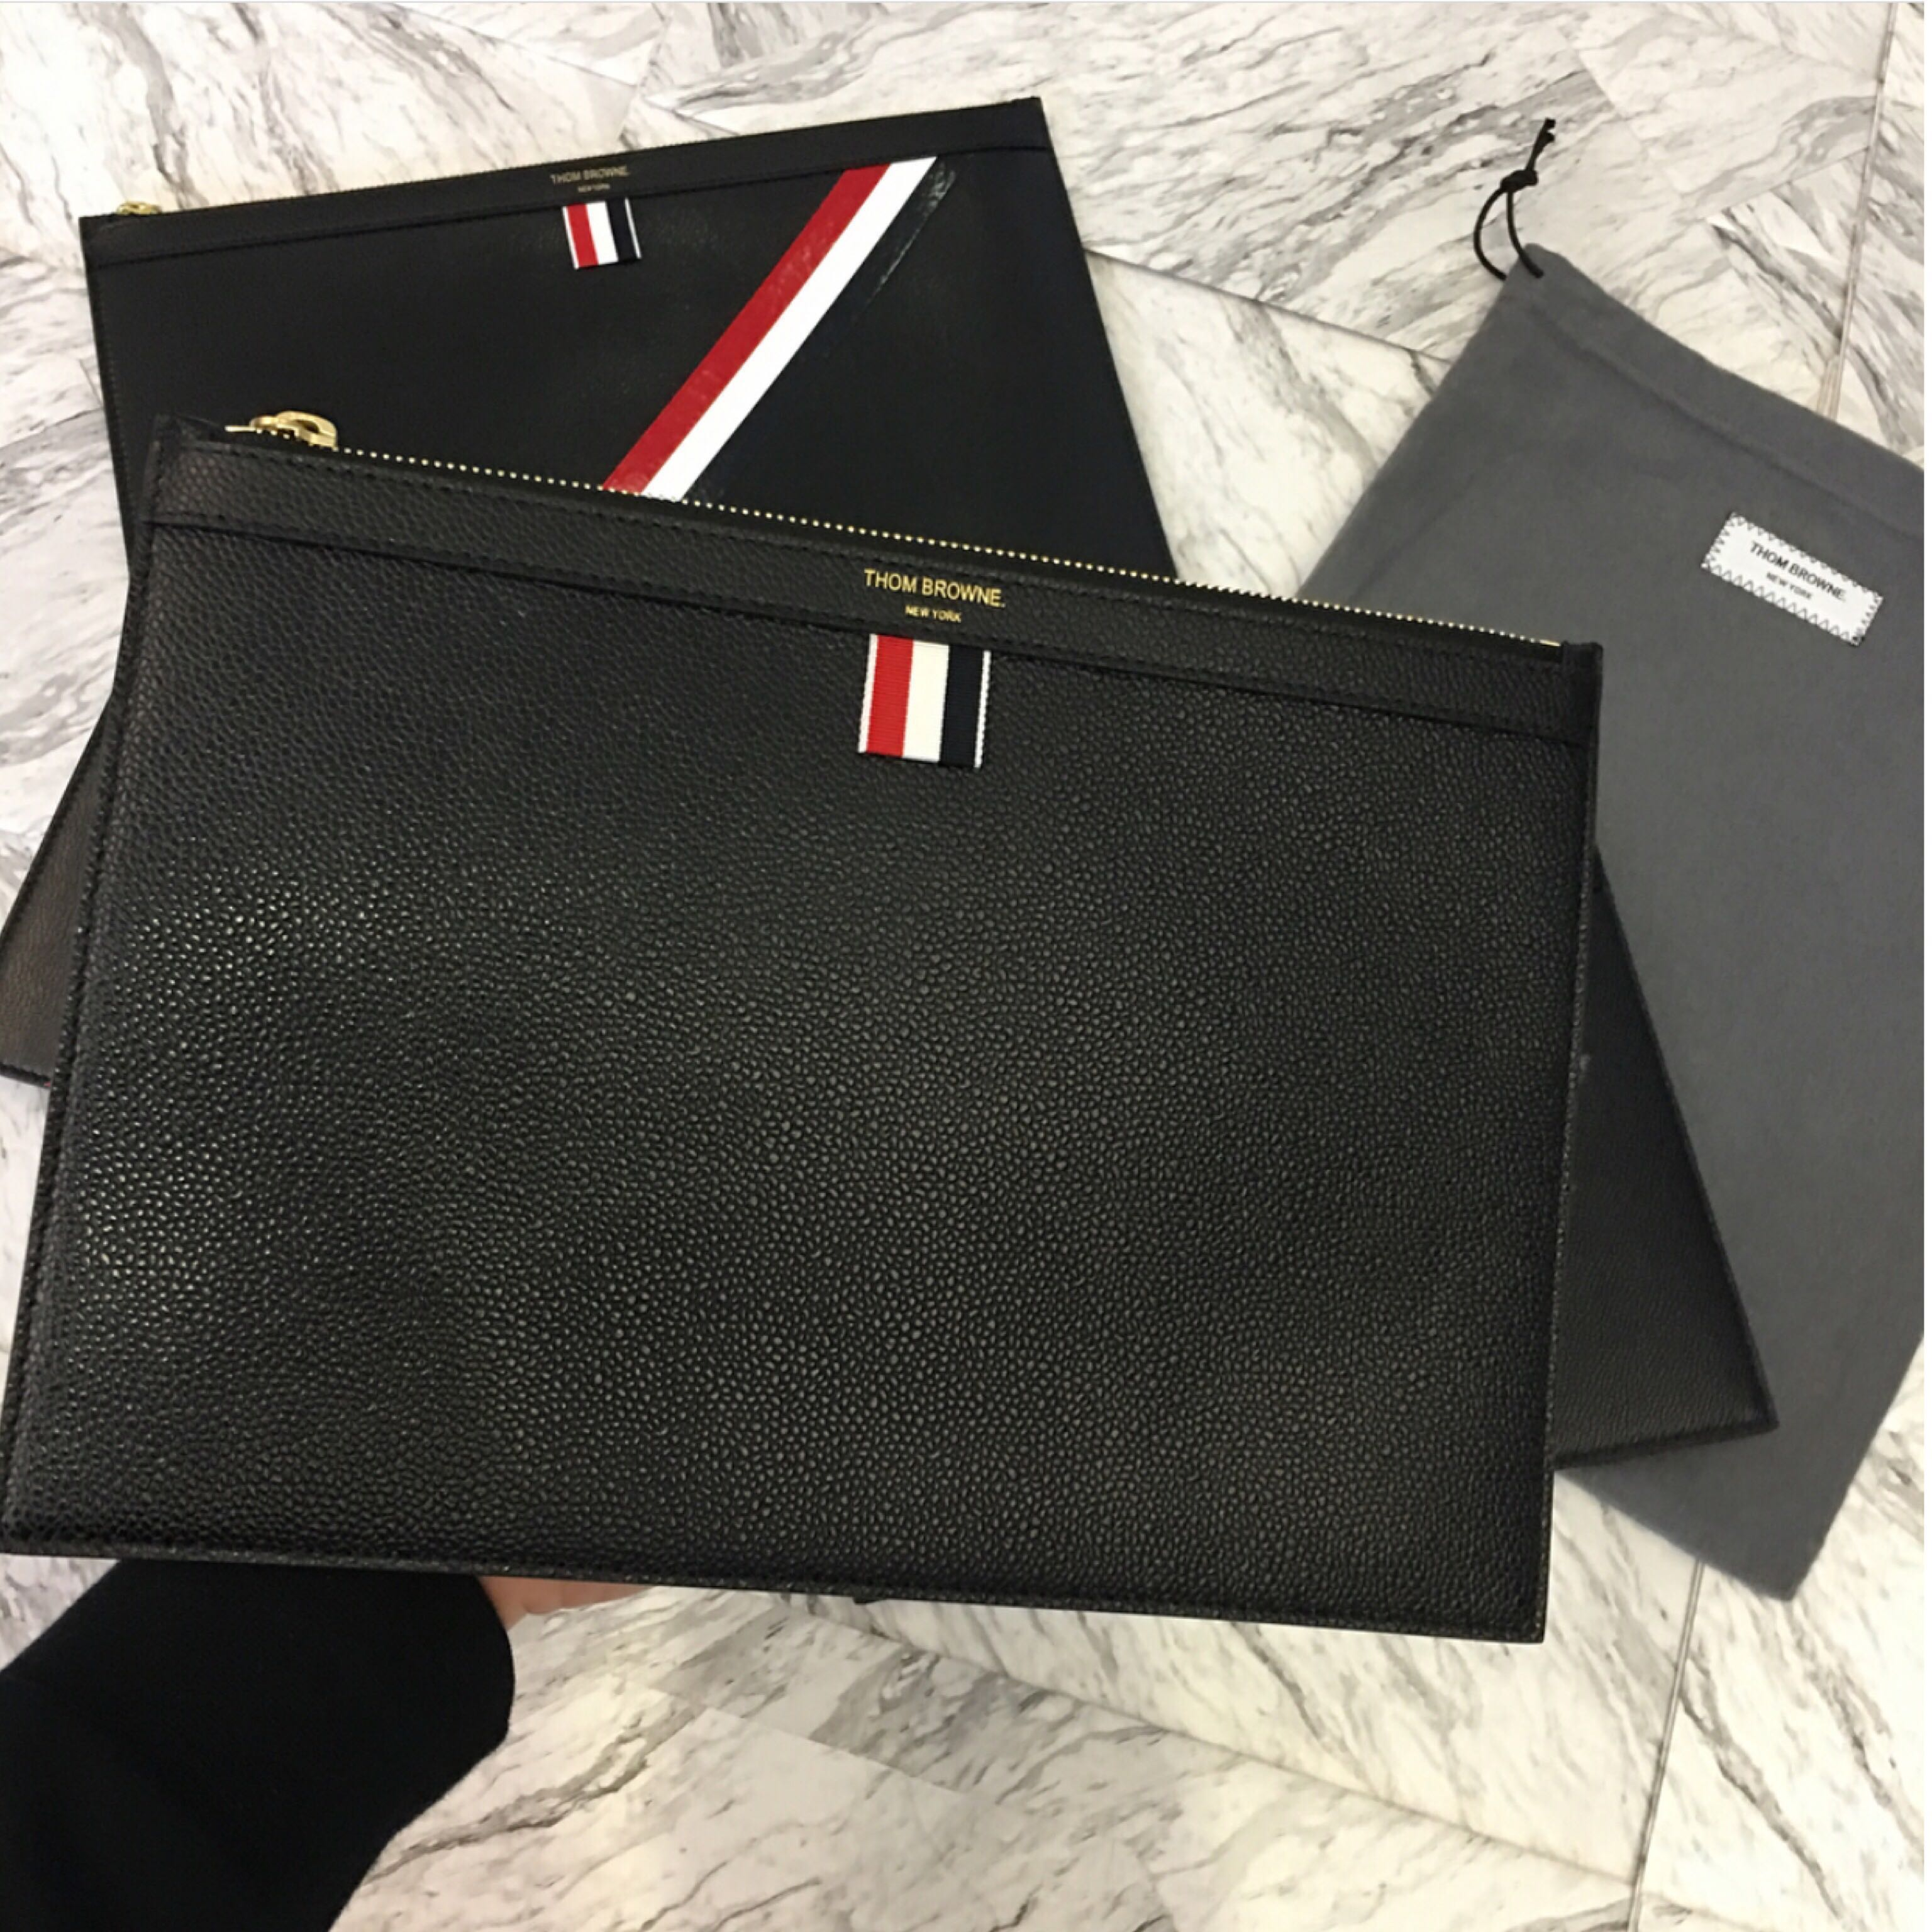 409214002d THOM BROWNE - leather clutch/ medium document holder (Black), Luxury, Bags  & Wallets on Carousell